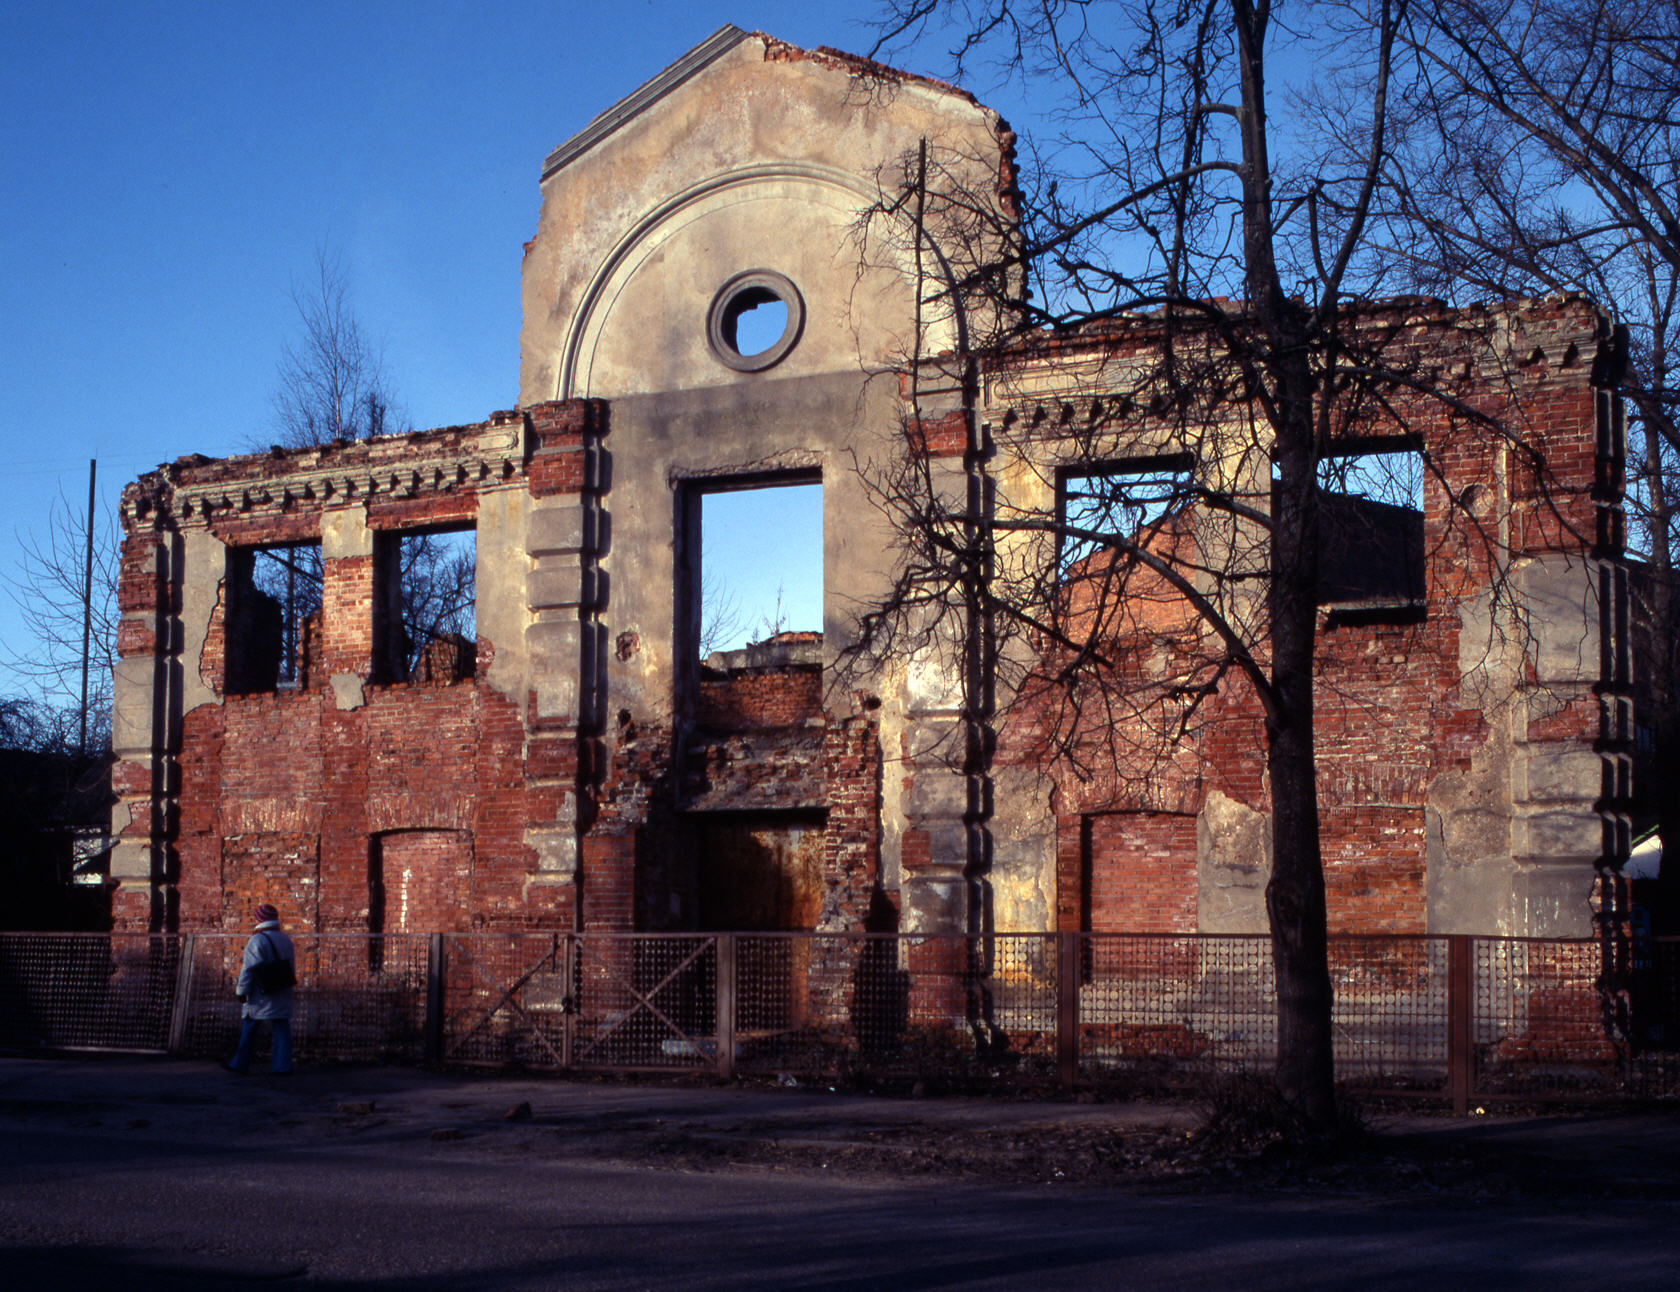 Jewish Sacred Buildings In Post Holocaust Era To Be Topic